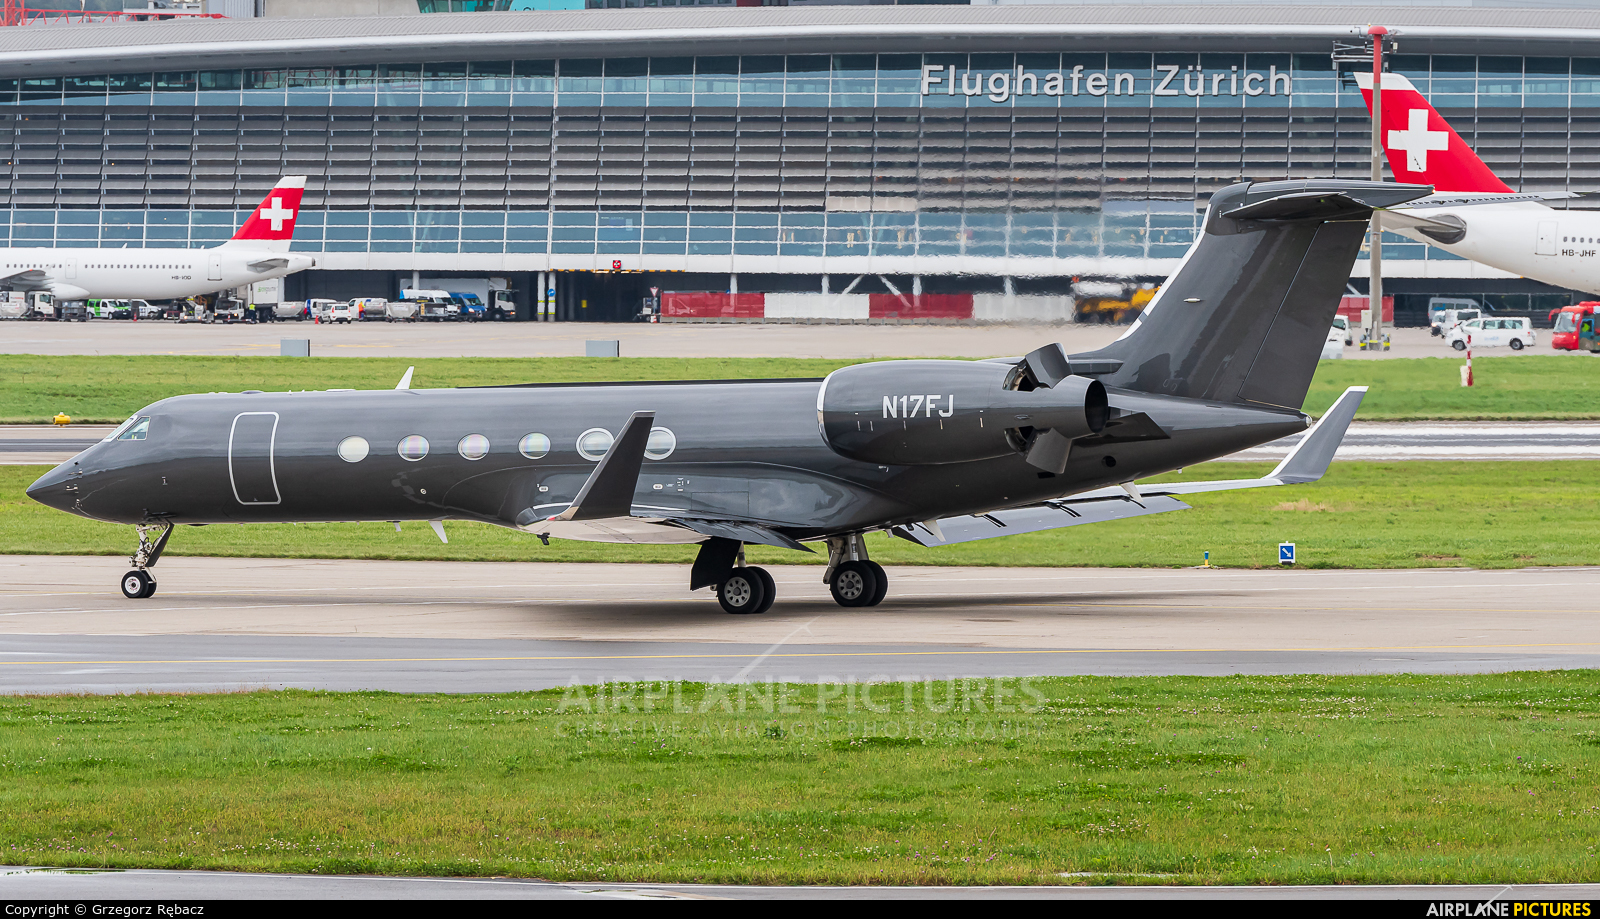 Private N17FJ aircraft at Zurich